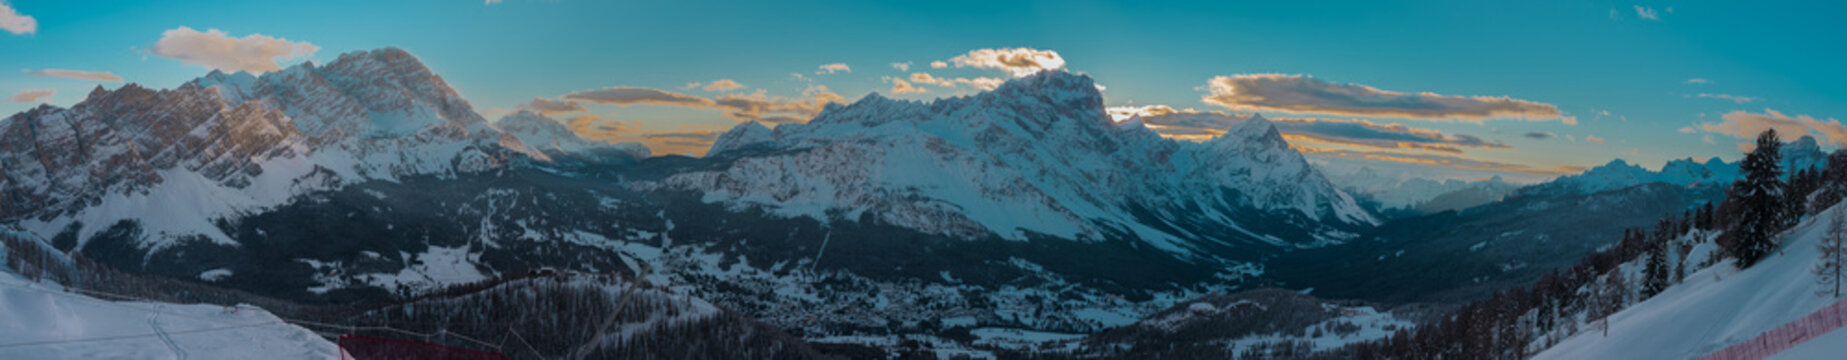 Early morning wide winter panorama of Valley around Cortina d'Ampezzo viewed from Tofana or ski piste above Cortina. Majestic mountains rising from the valley in sunrise.